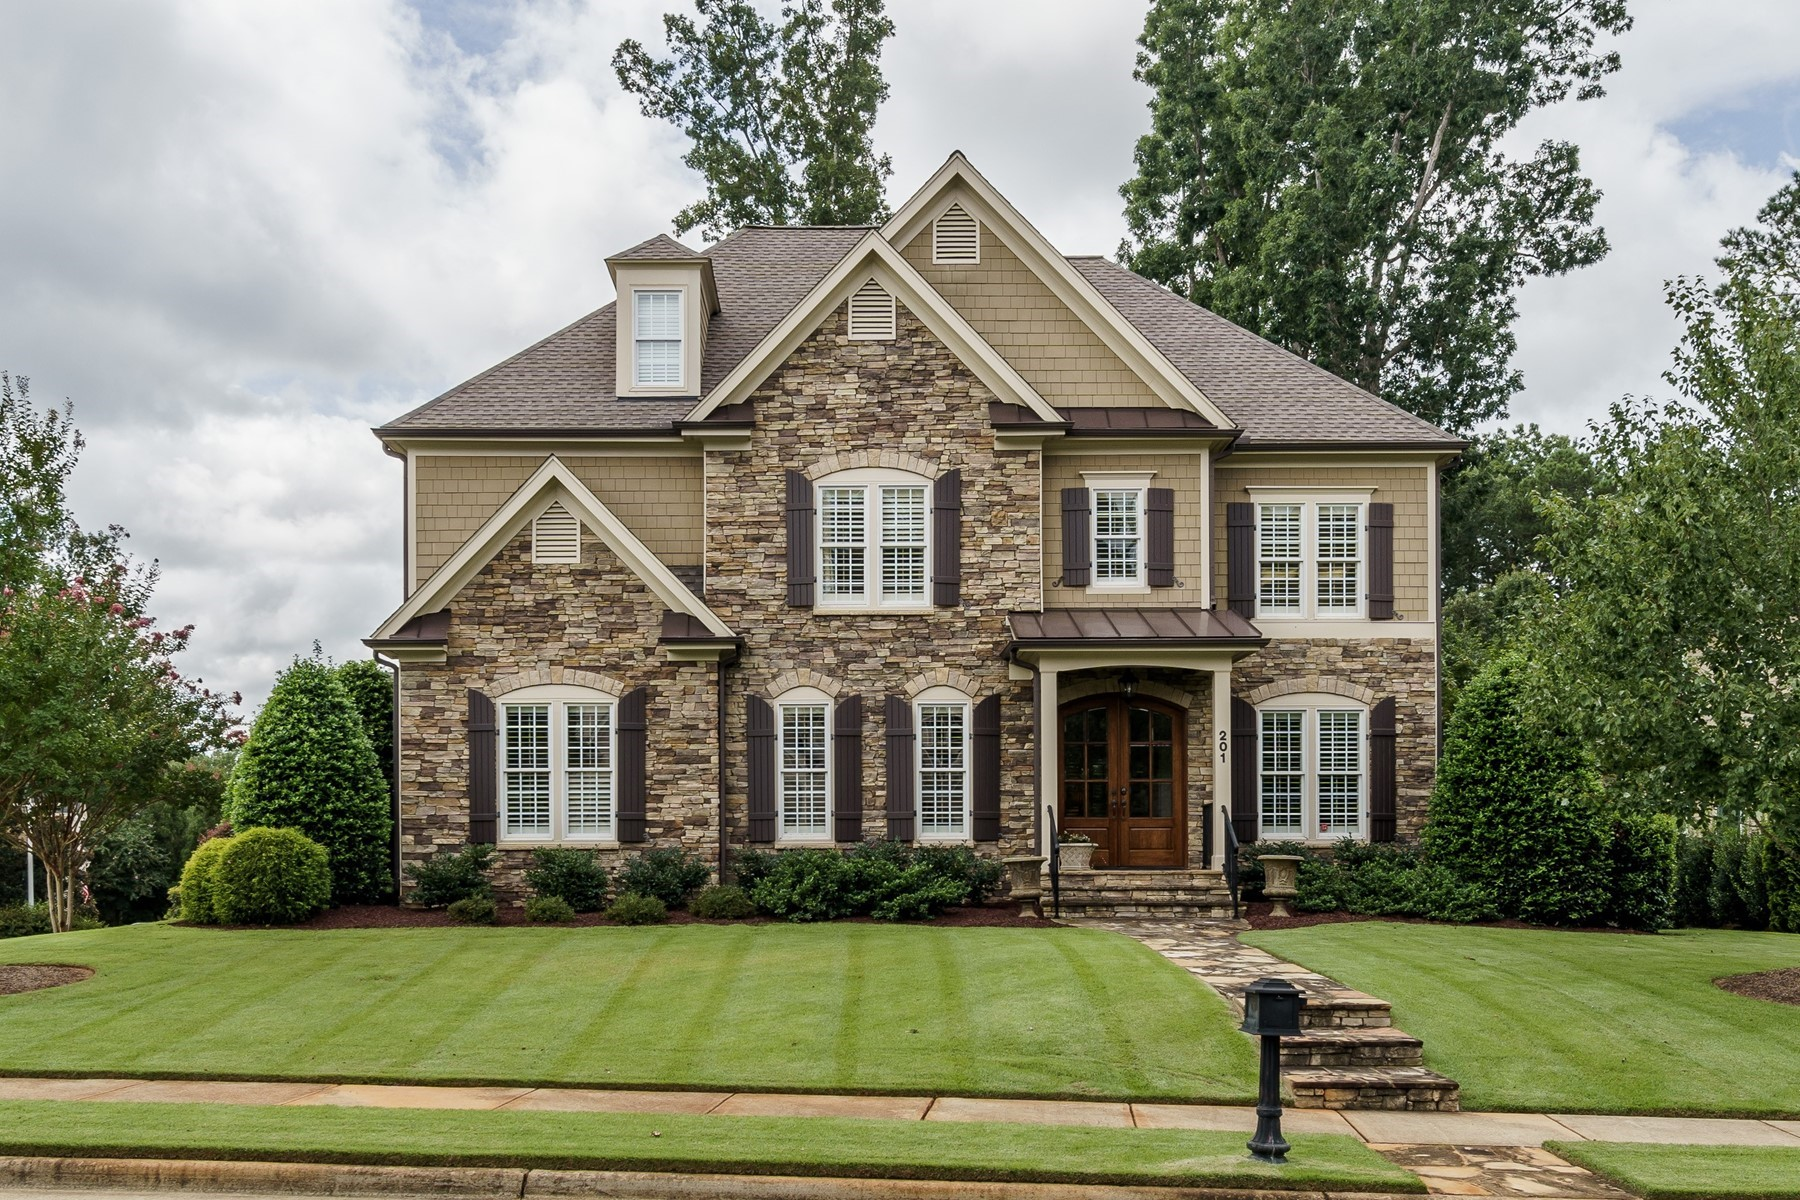 Single Family Homes for Sale at Exquisite Residence in Churchill Estates 201 Wedge Porr Court Apex, North Carolina 27539 United States